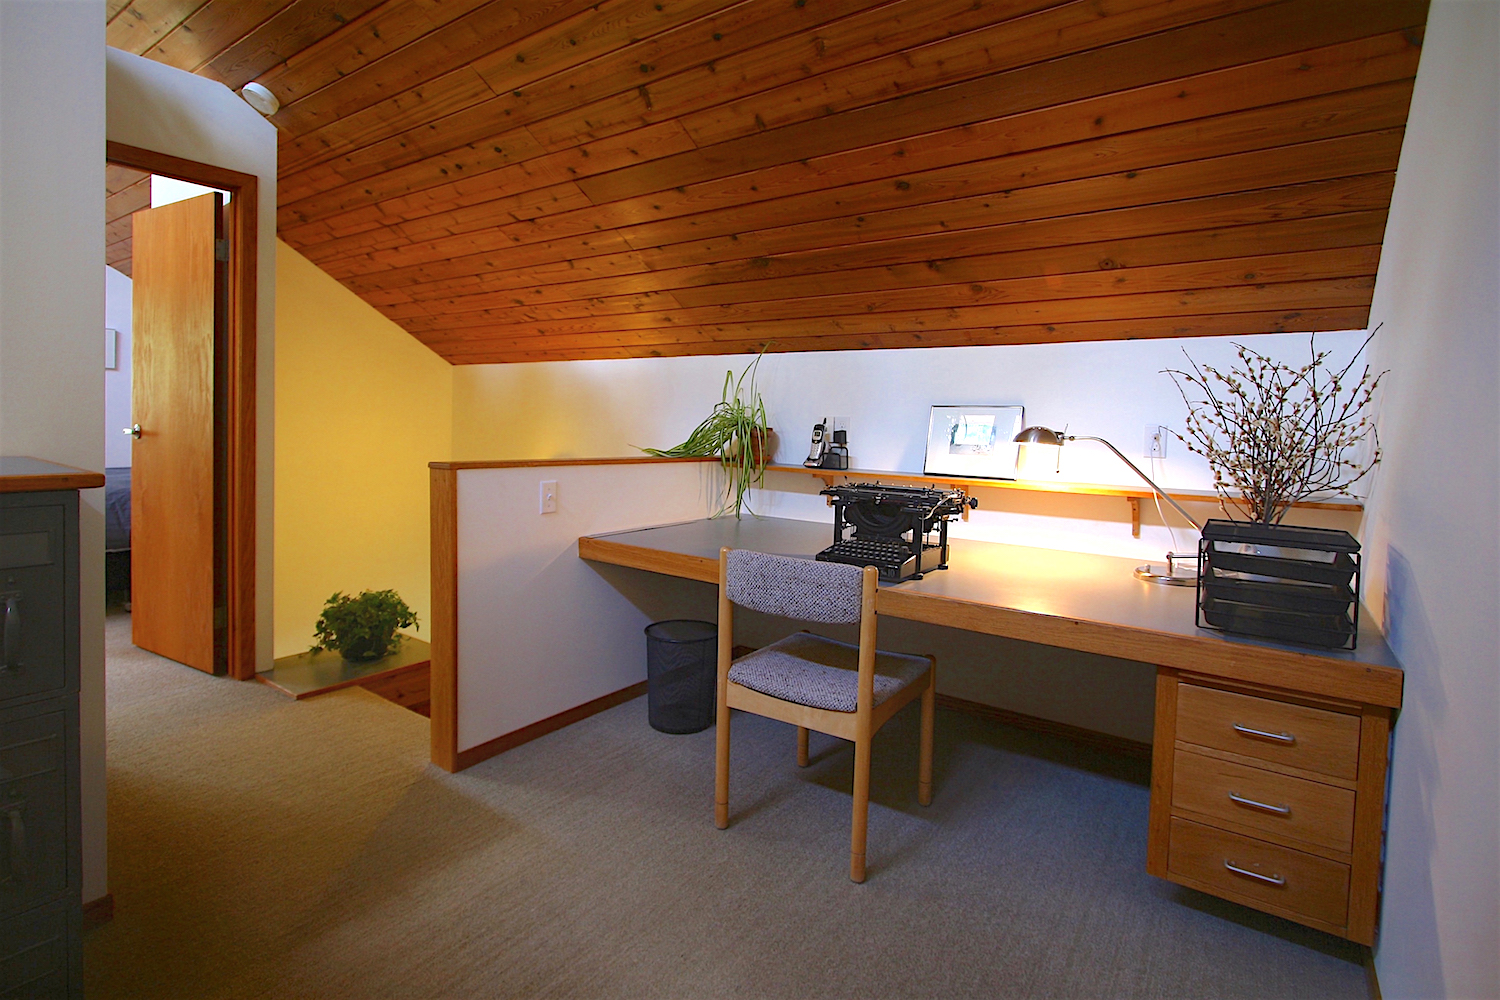 The studio/library features a large, built-in work surface against the north wall (discretely reinforced with steel, it supports full body weight and more). The stairwell to the lower level is just to the left of the knee-wall...